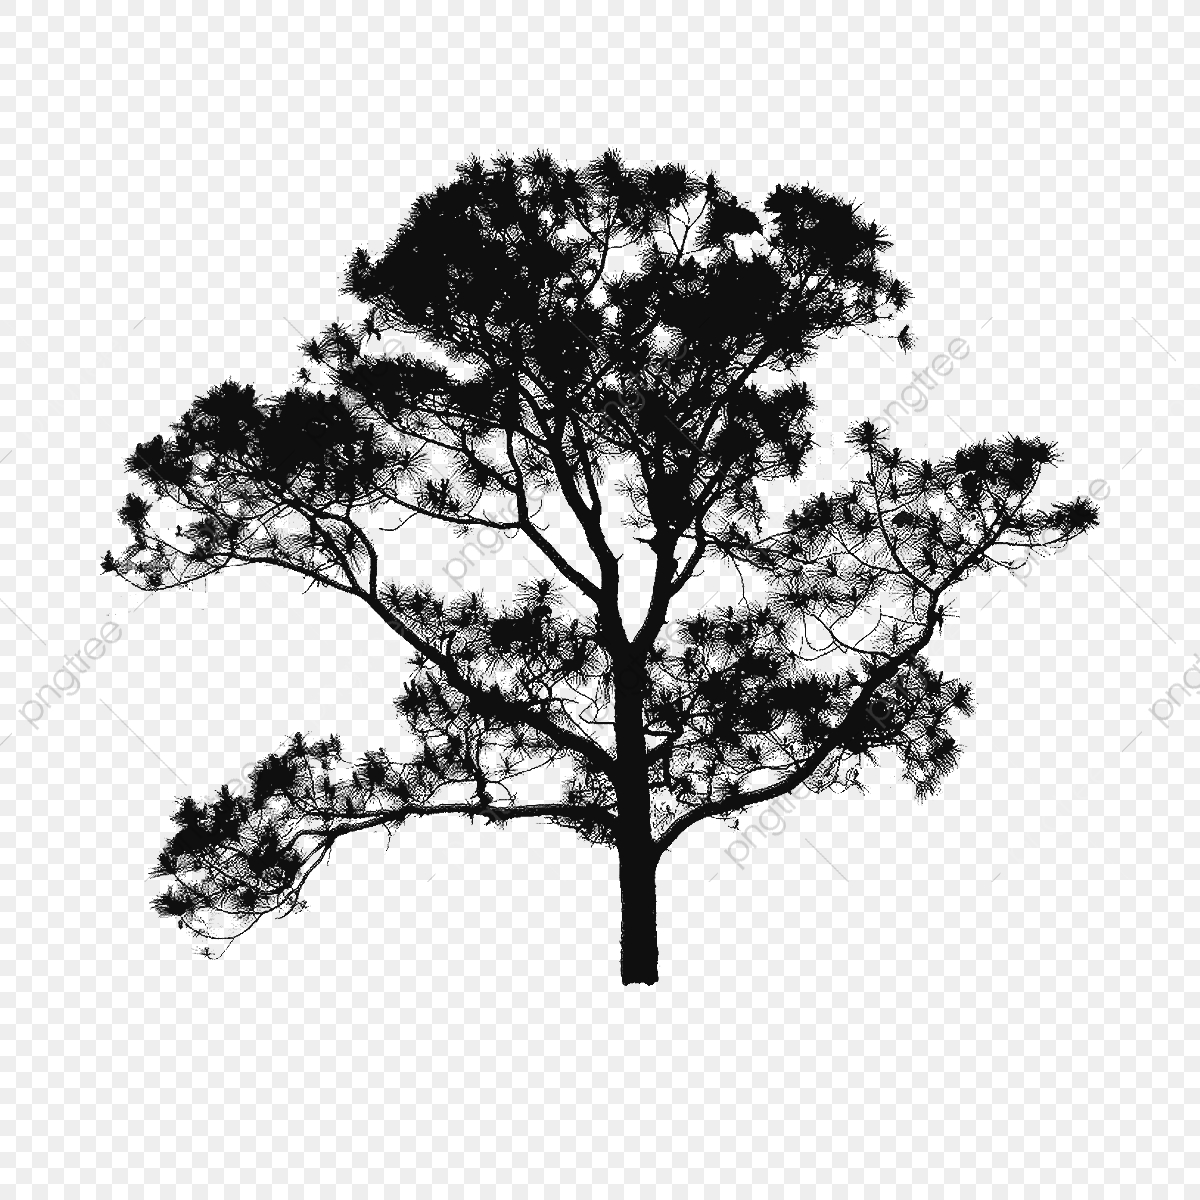 hight resolution of commercial use resource upgrade to premium plan and get license authorization upgradenow tree plan clipart free vector